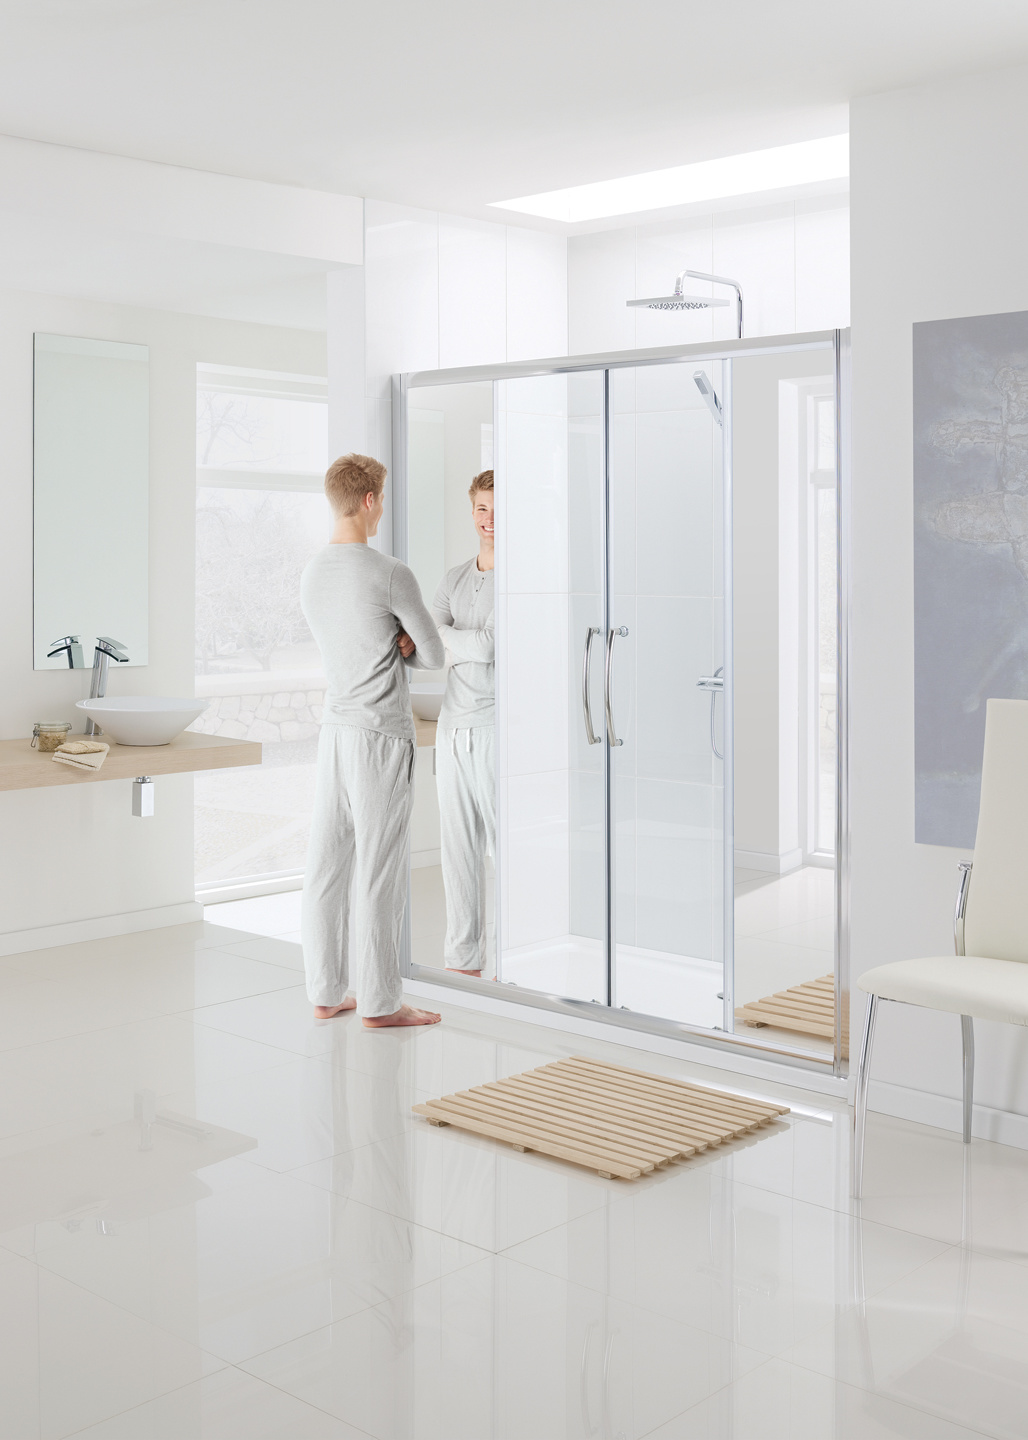 Mirror: Semi-Frameless Double Slider Door shower enclosure